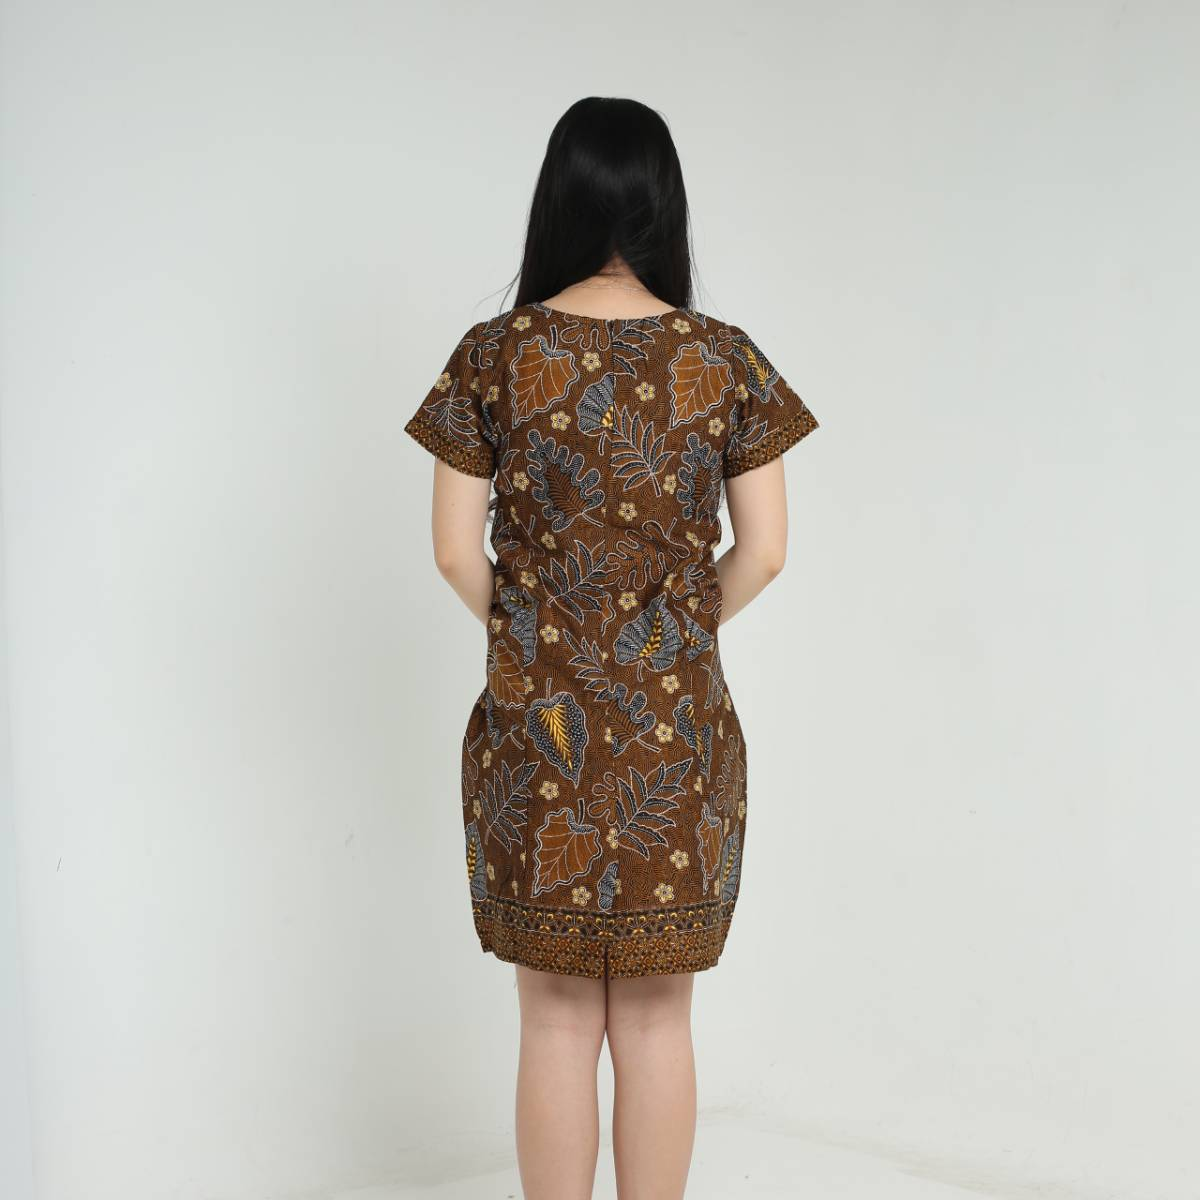 Dress Wanita Batik-Priska Dress (Brown)2